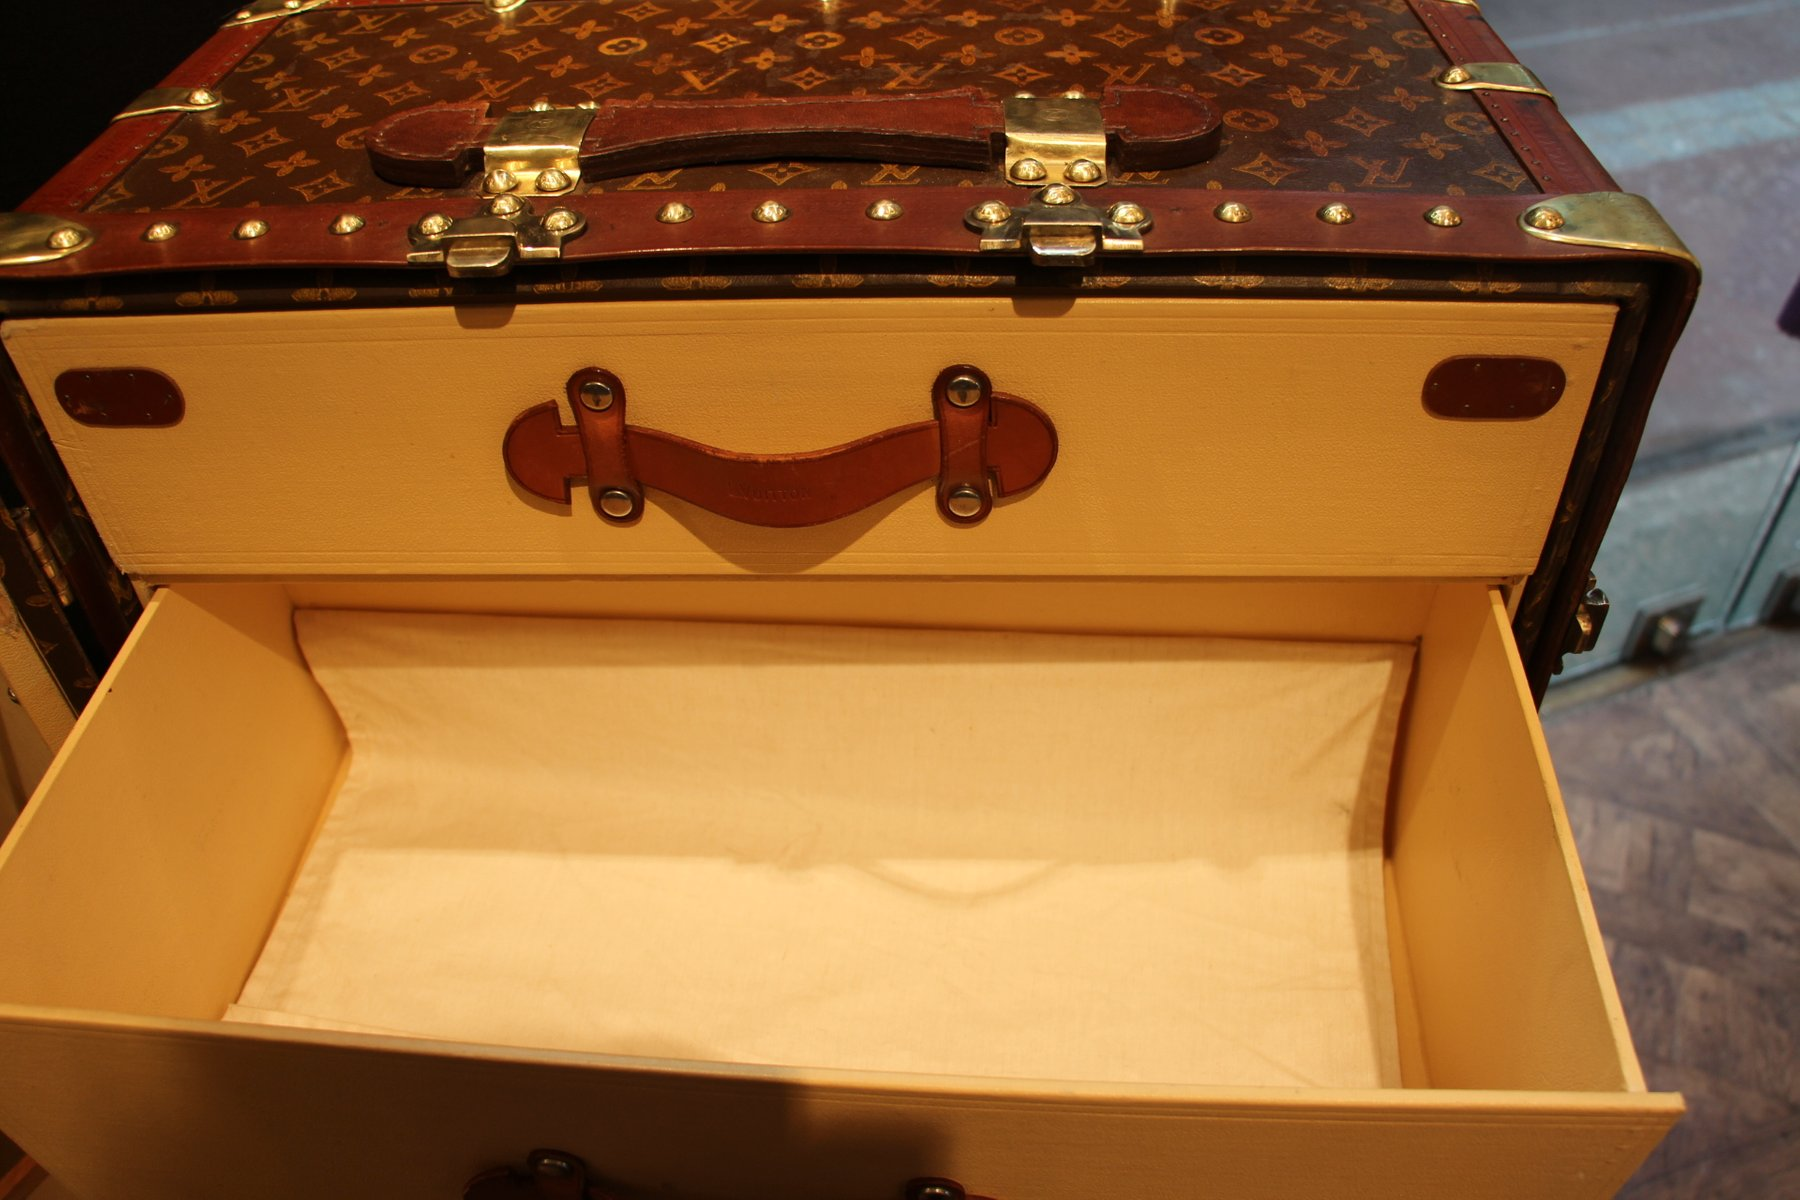 Vintage Wardrobe Steamer Trunk from Louis Vuitton for sale